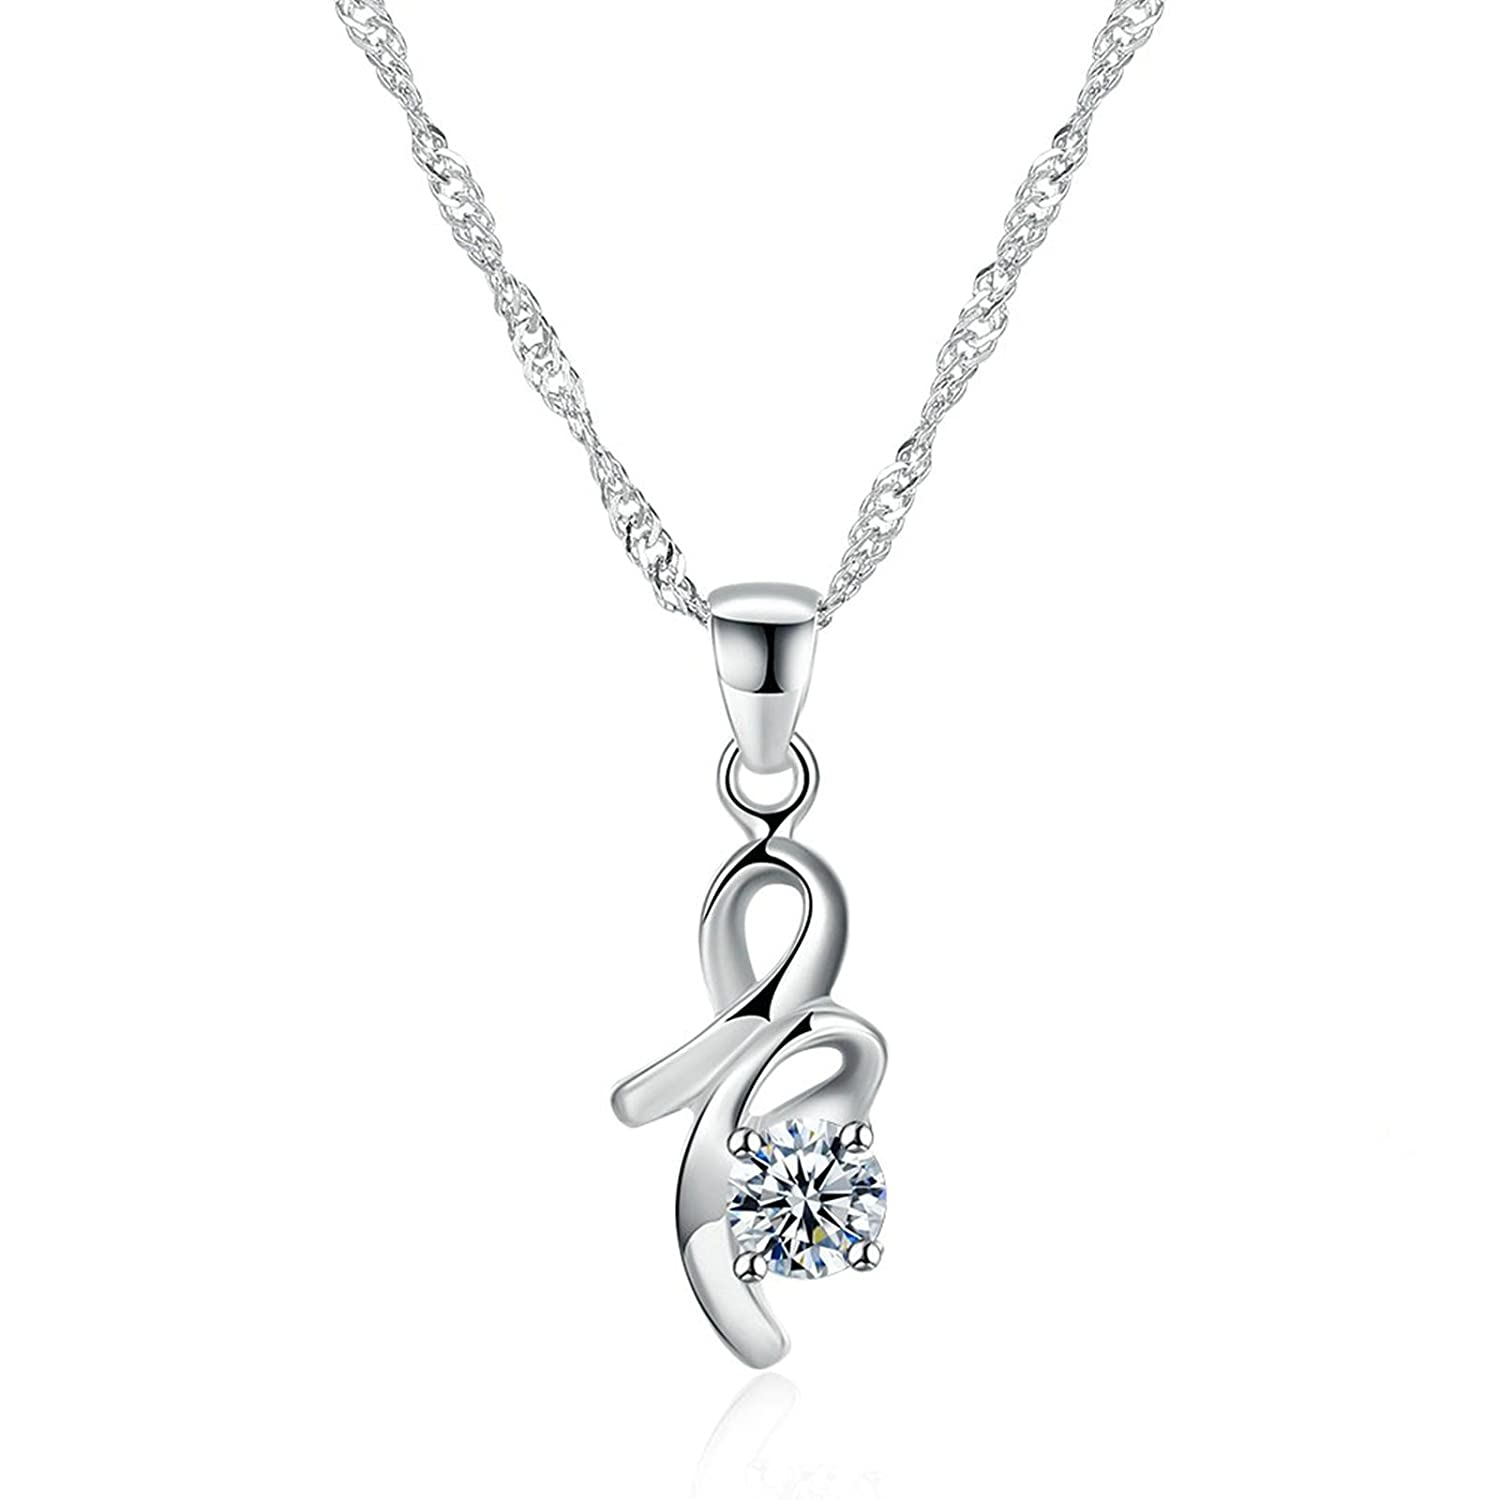 Daesar Silver Plated Necklace for Women Streamlined Figure 8 Cubic Zirconia White Chain Length 40+5CM